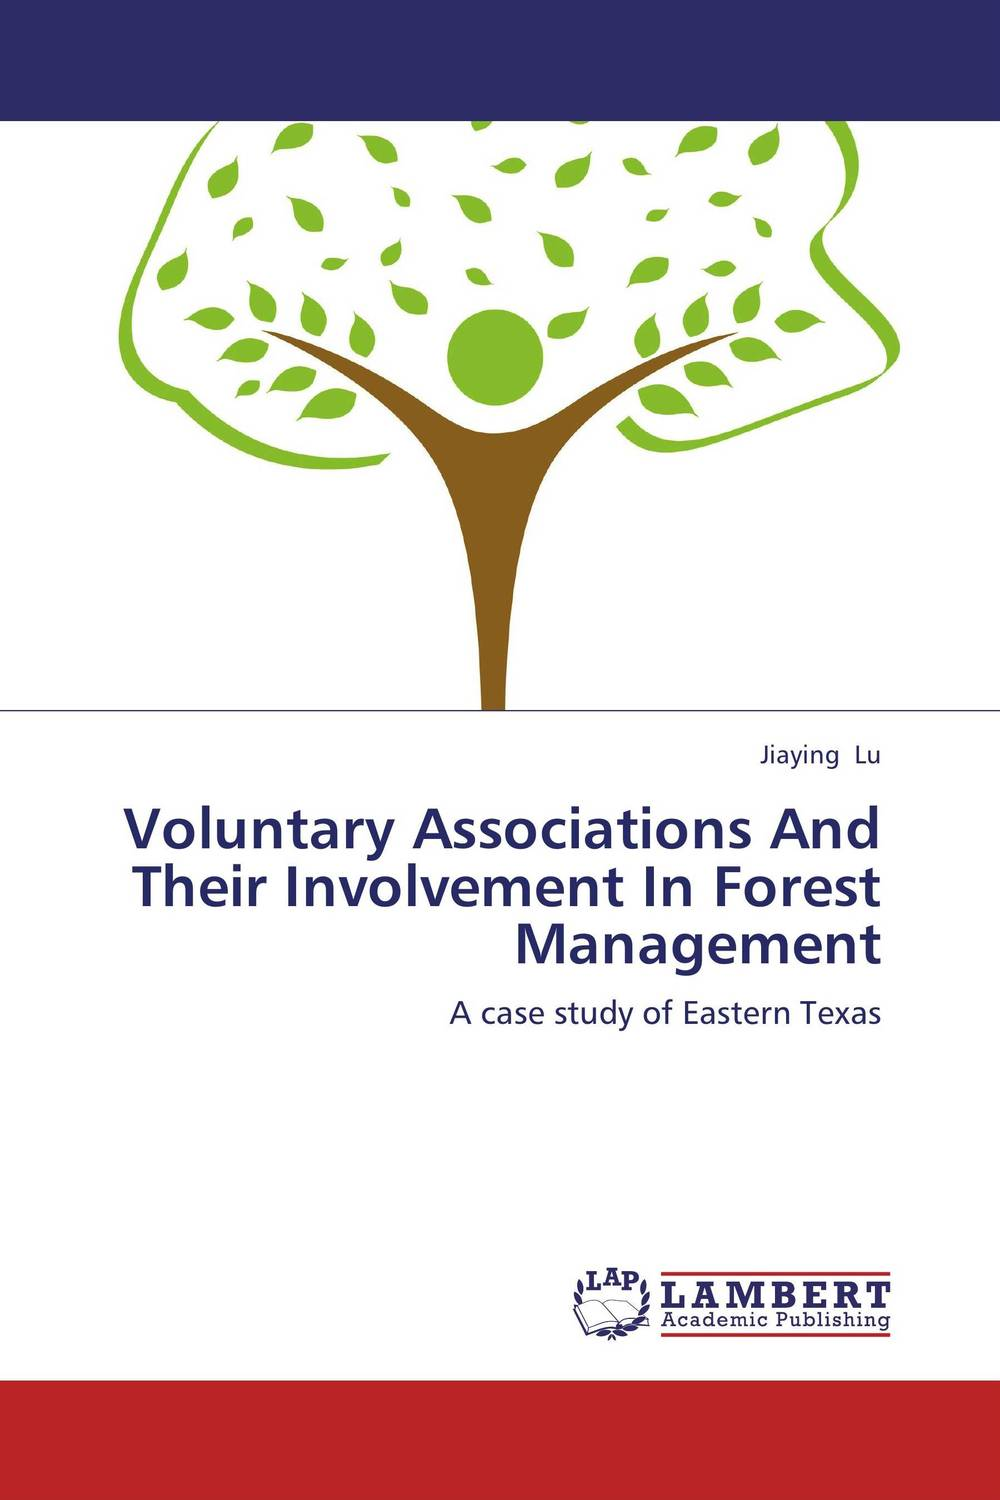 Voluntary Associations And Their Involvement In Forest Management